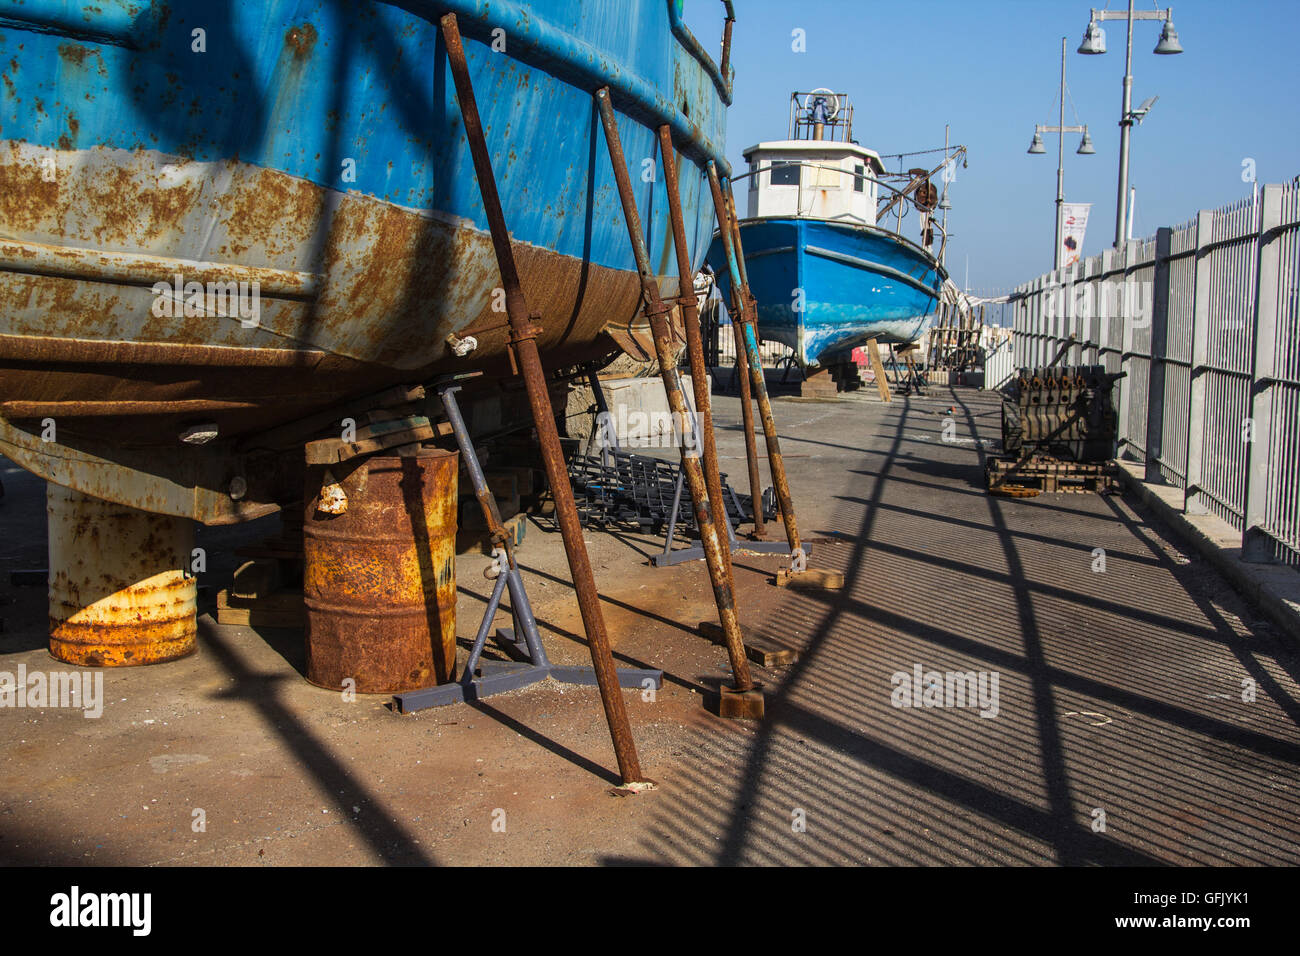 abandoned old ship full of rust and mold on the inland port area, - Stock Image